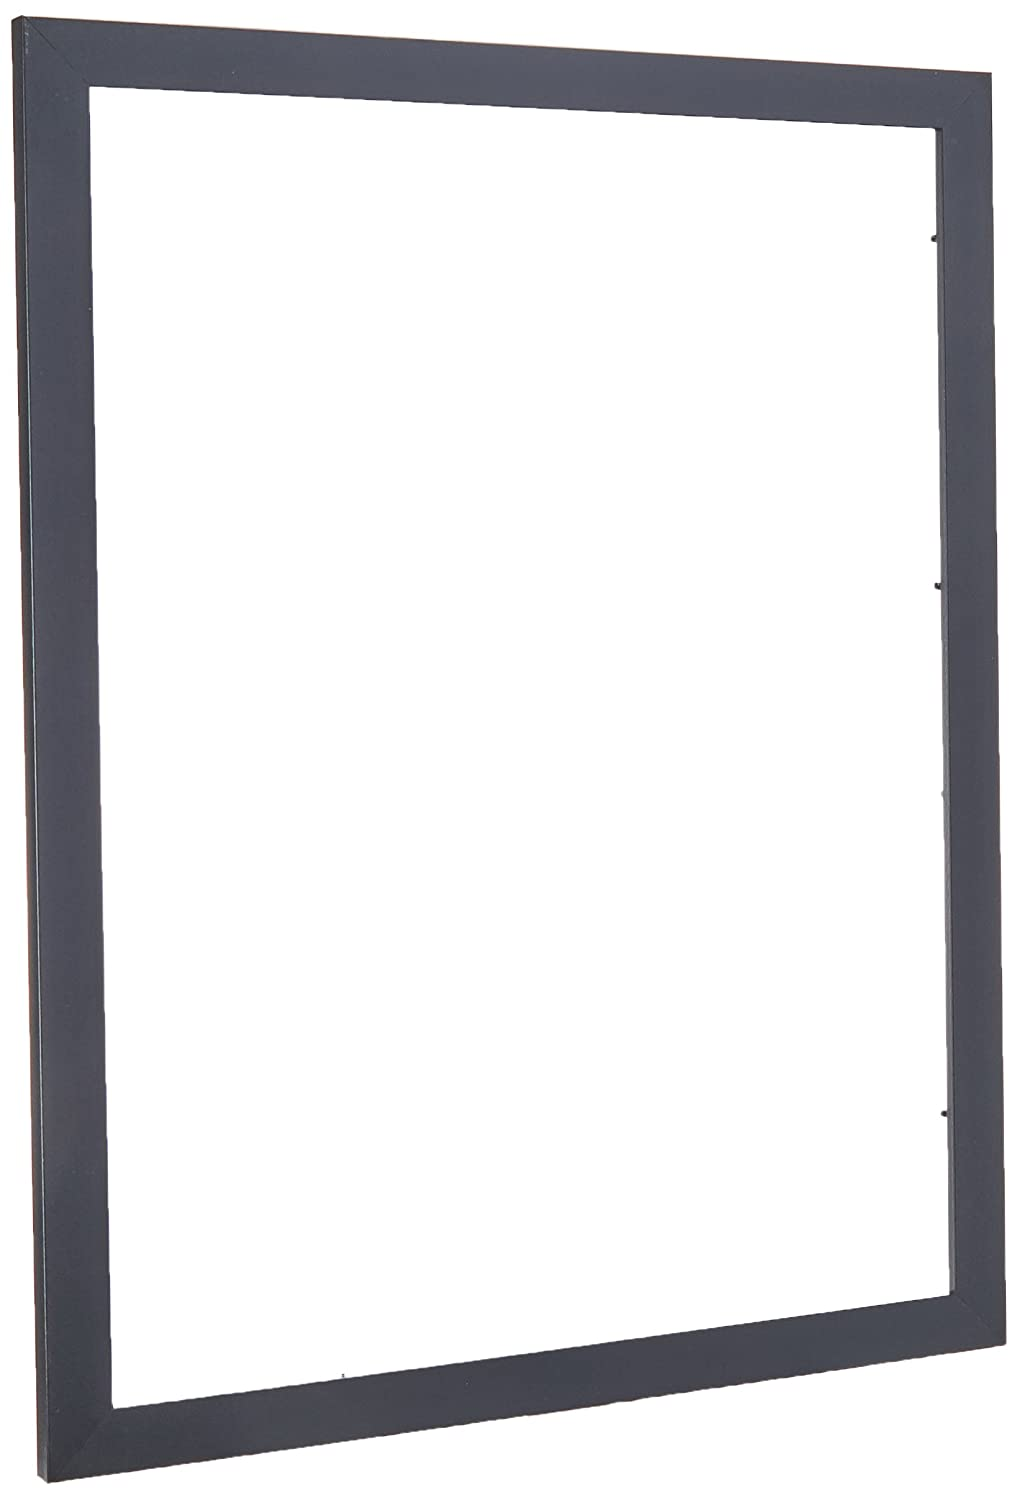 Amazon.com - ArtToFrames 18x24 inch Black Picture Frame ...